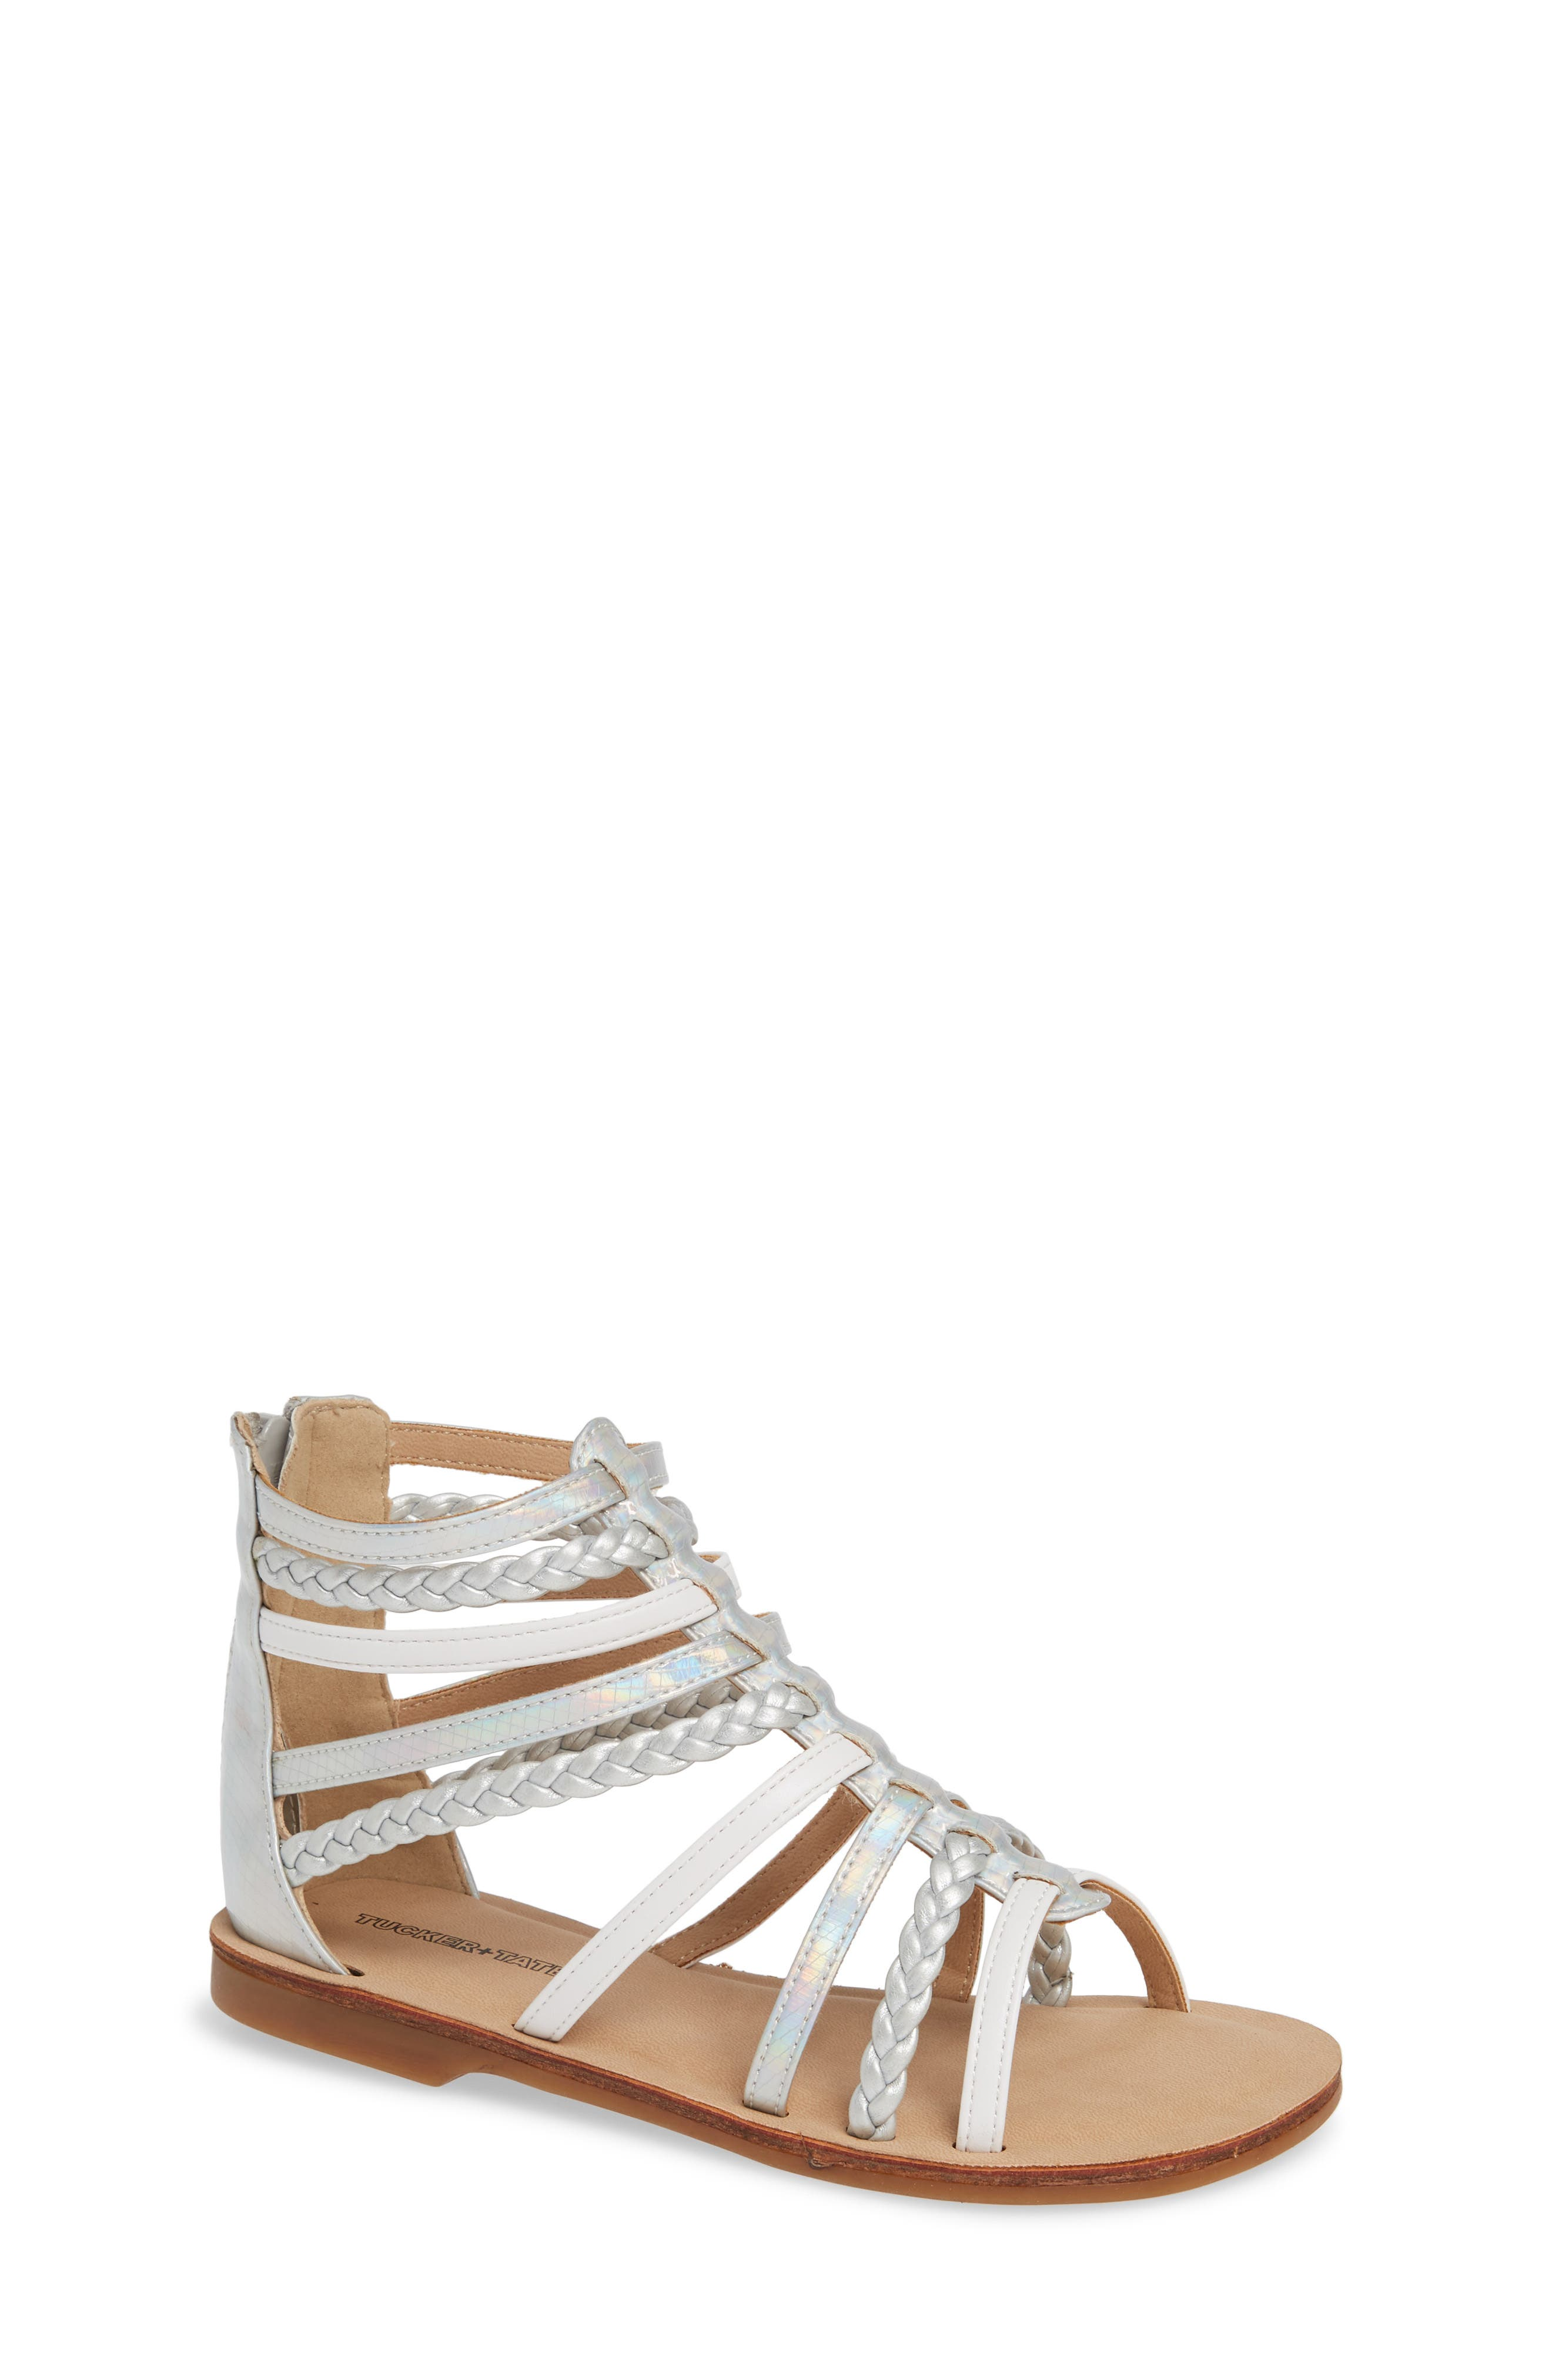 Sonja Braided Gladiator Sandal,                         Main,                         color, WHITE/SILVER FAUX LEATHER